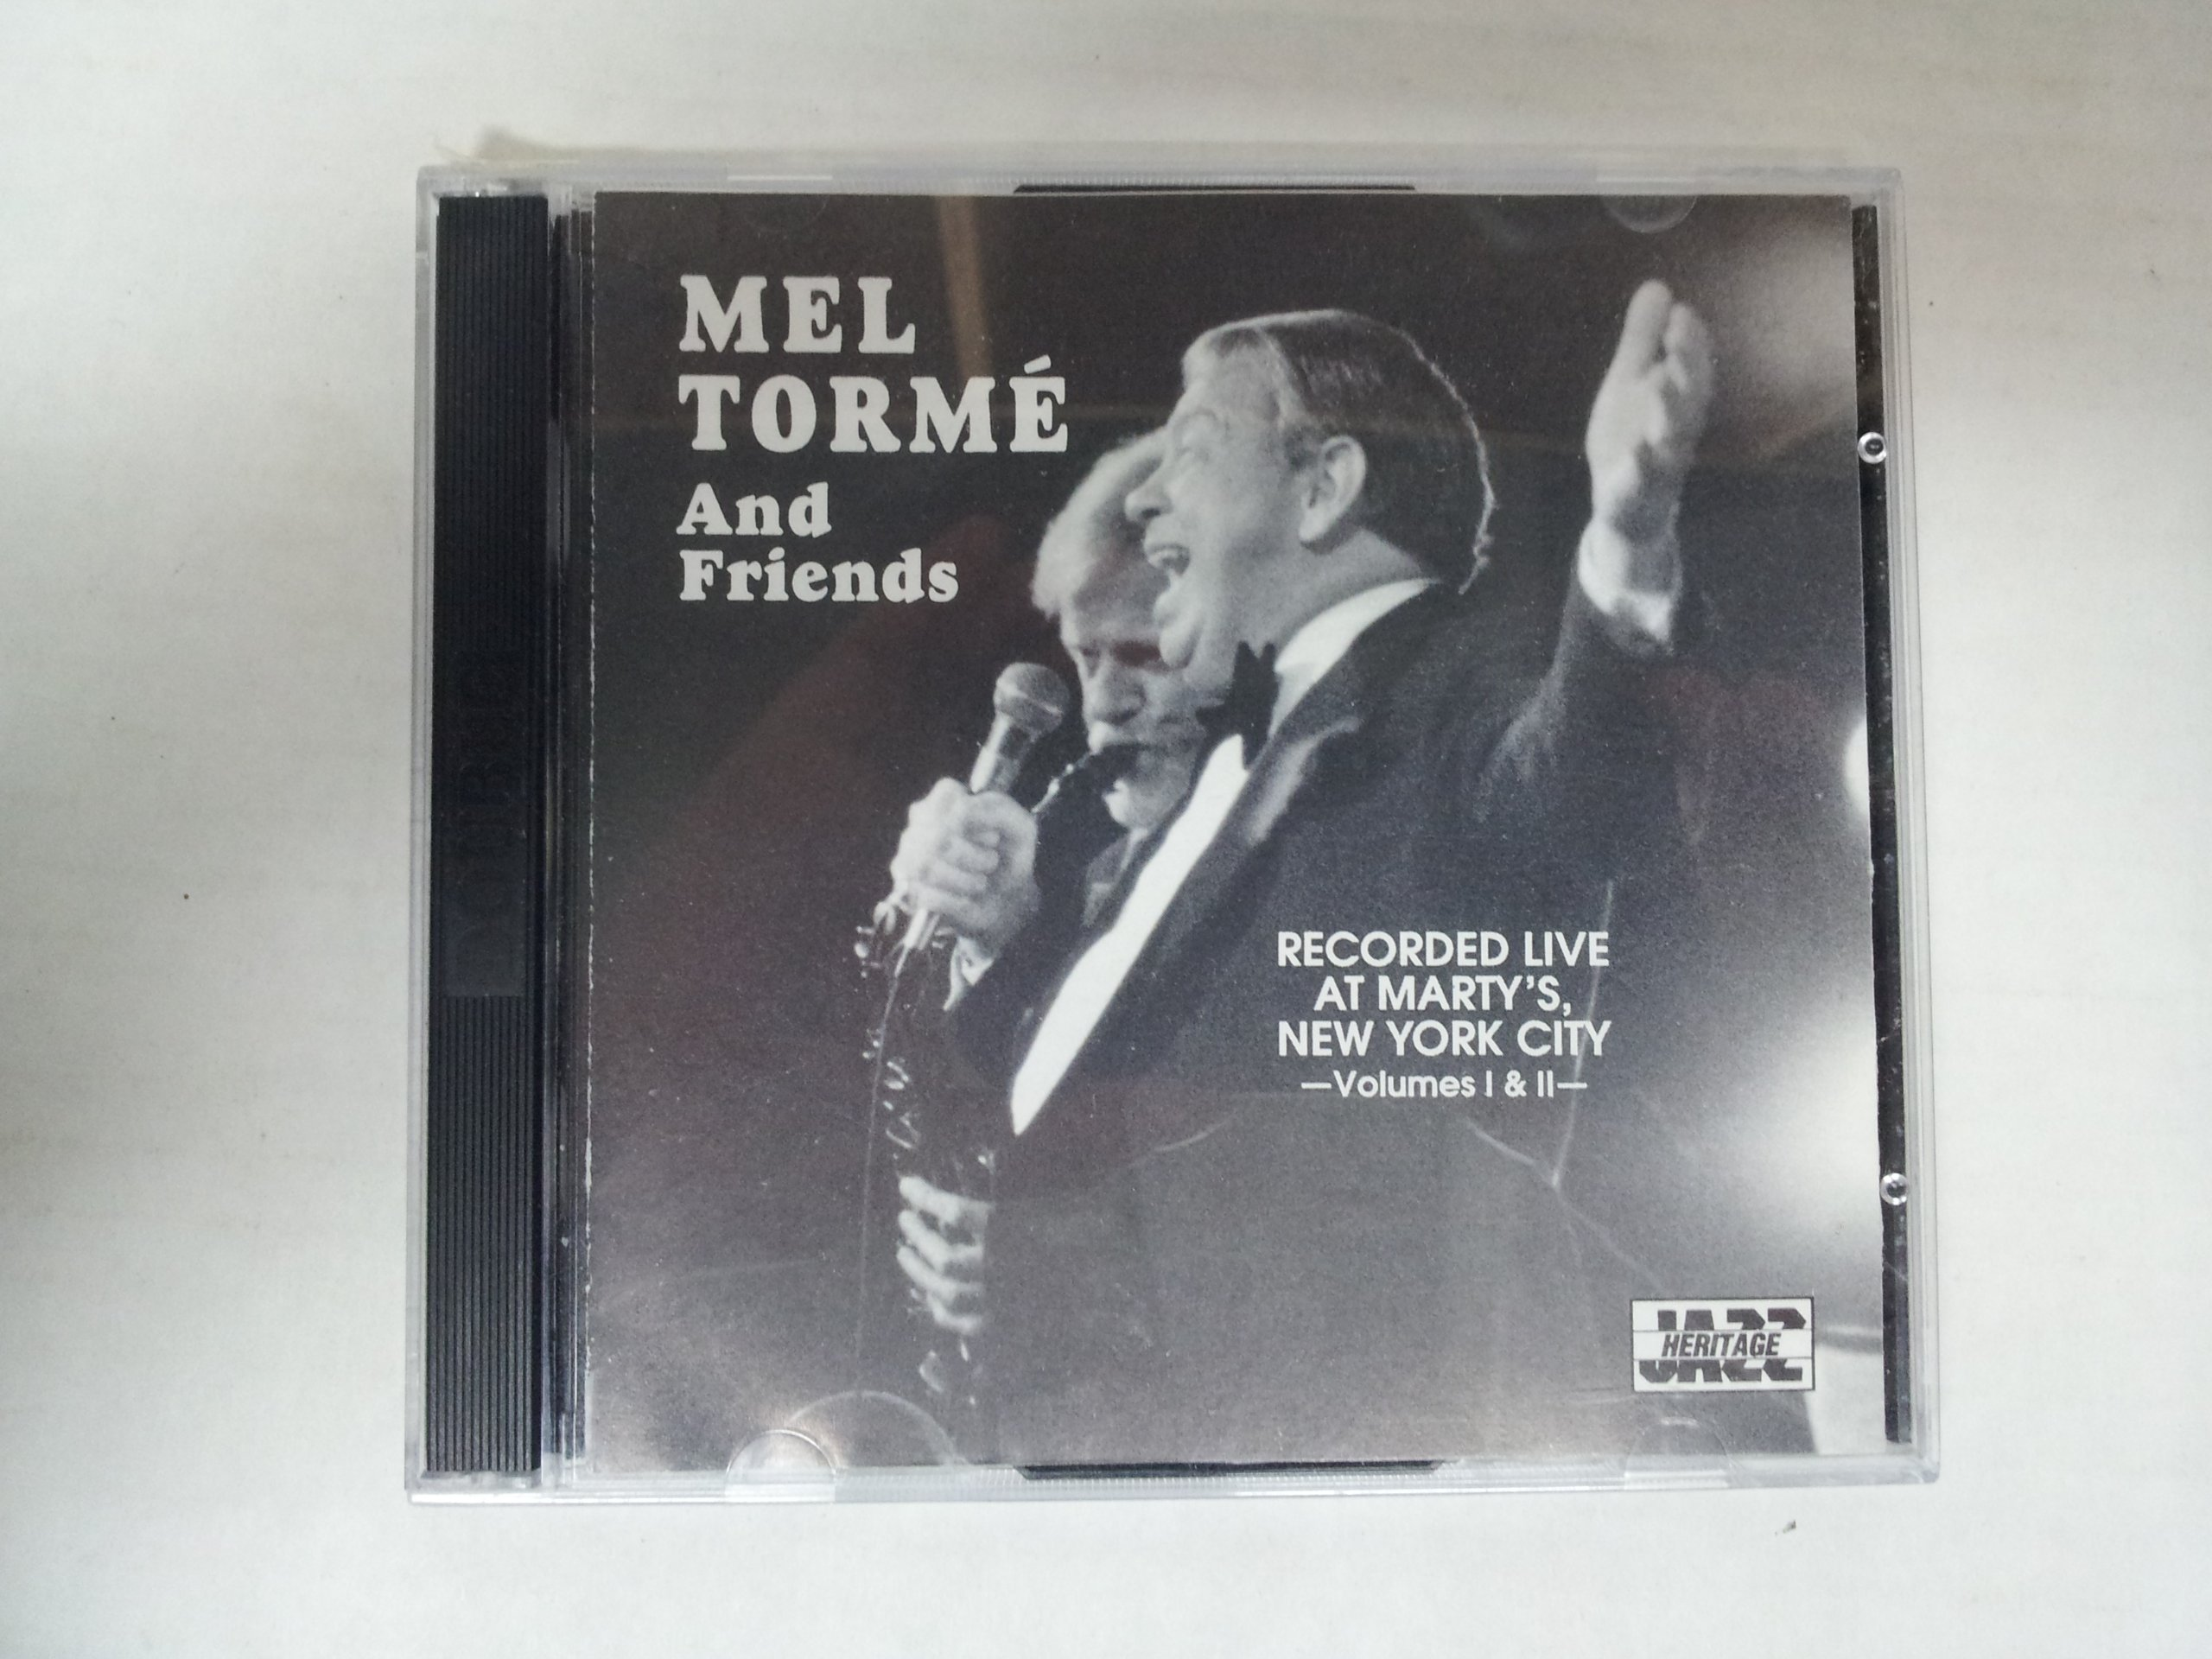 Mel Torme & Friends: Recorded Live at Marty's, New York City, Volumes I & II by MUSICAL HERITAGE SOCIETY